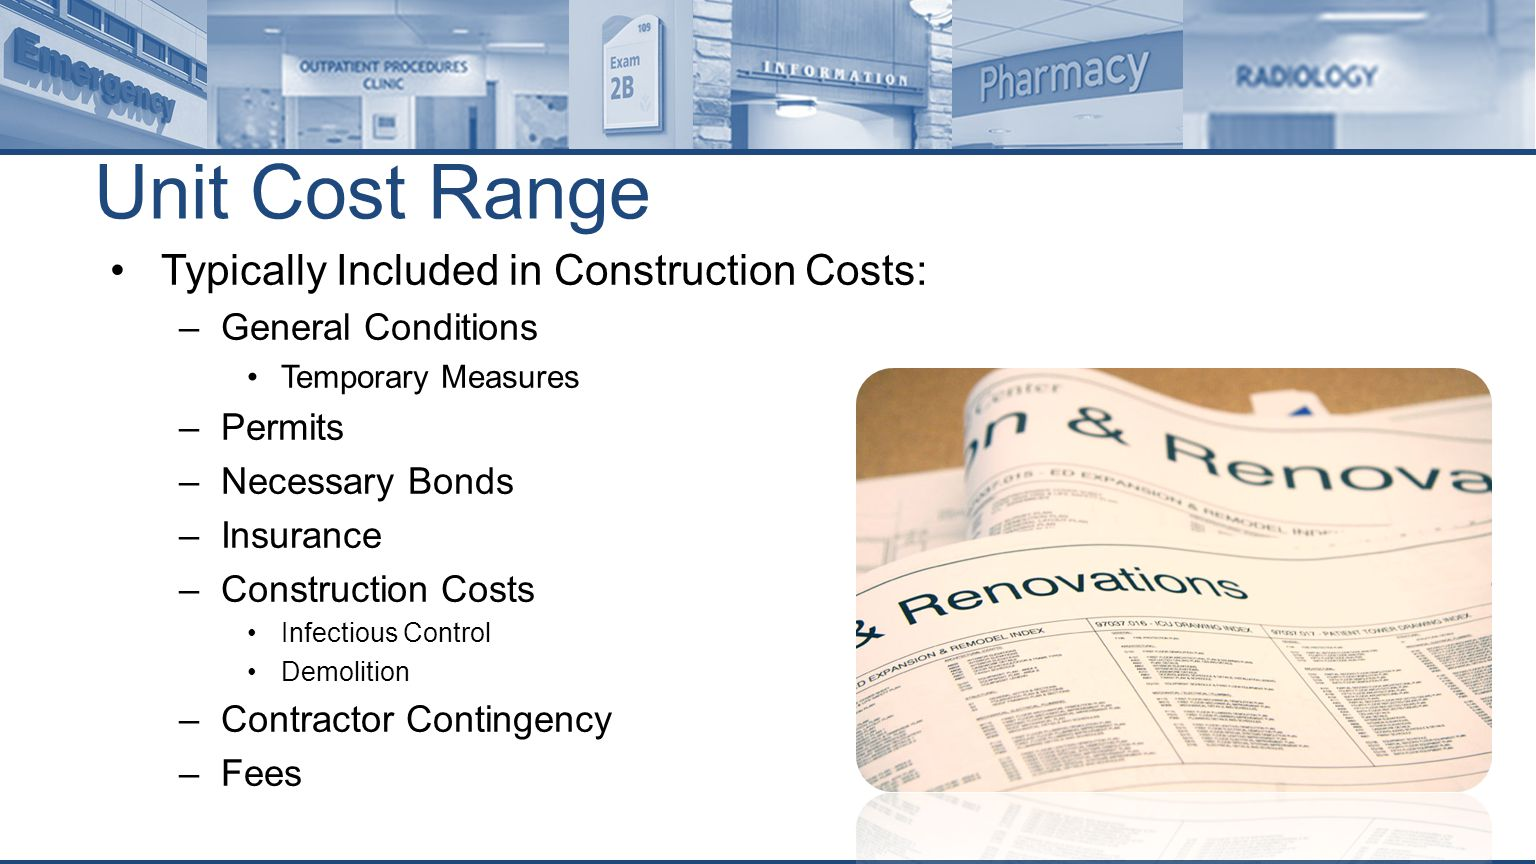 Unit Cost Range Typically Included in Construction Costs: –General Conditions Temporary Measures –Permits –Necessary Bonds –Insurance –Construction Costs Infectious Control Demolition –Contractor Contingency –Fees